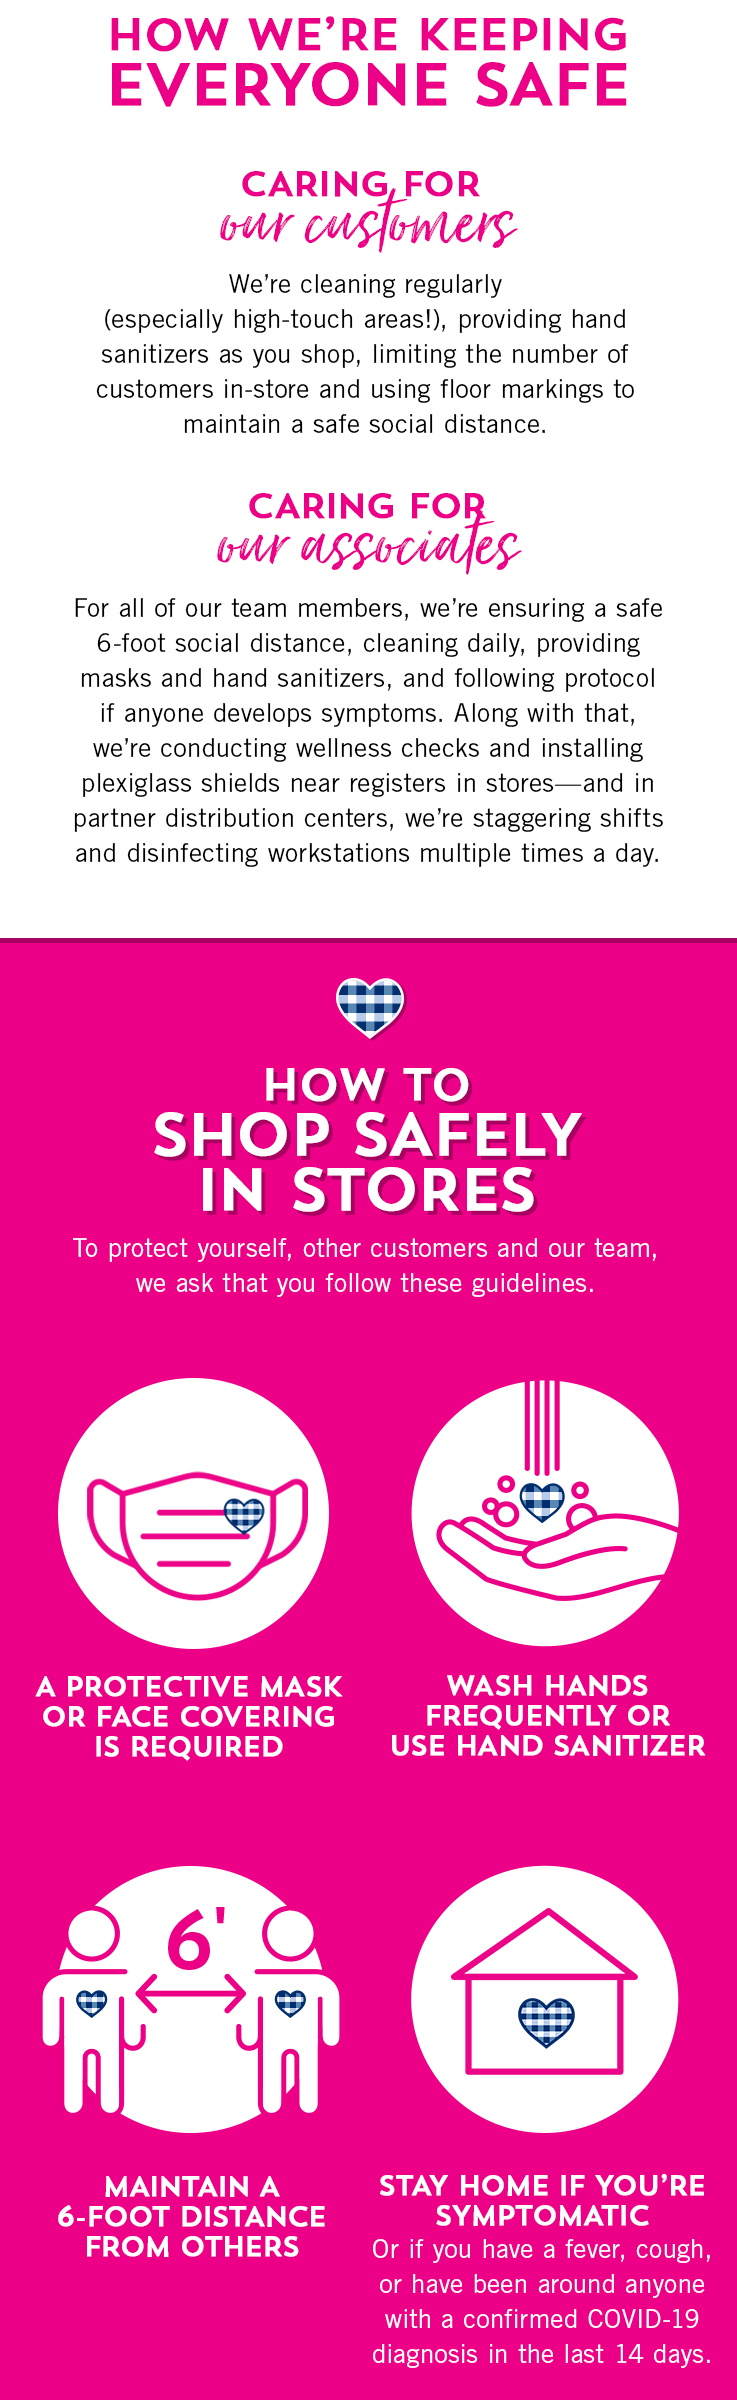 Here's how we're keeping everyone safe. To care for our customers, we're cleaning regularly (especially high-touch areas!), providing hand sanitizers as you shop, limiting the number of customers in-store and using floor markings to maintain a safe social distance. To care for all of our team members, we're ensuring a safe 6-foot social distance, cleaning daily, providing masks and hand sanitizers, and following protocol if anyone develops symptoms. Along with that, we're conducting wellness checks and installing plexiglass shields near registers in stores—and in partner distribution centers, we're staggering shifts and disinfecting workstations multiple times a day. Here's how to shop safely in stores. To protect yourself, other customers and our team, we ask that you wear a protective mask or face covering, wash hands frequently or use hand sanitizer, maintain a 6-foot distance from others, and stay home if you're symptomatic or if you have a fever, cough, or have been around anyone with a confirmed COVID-19 diagnosis in the last 14 days.